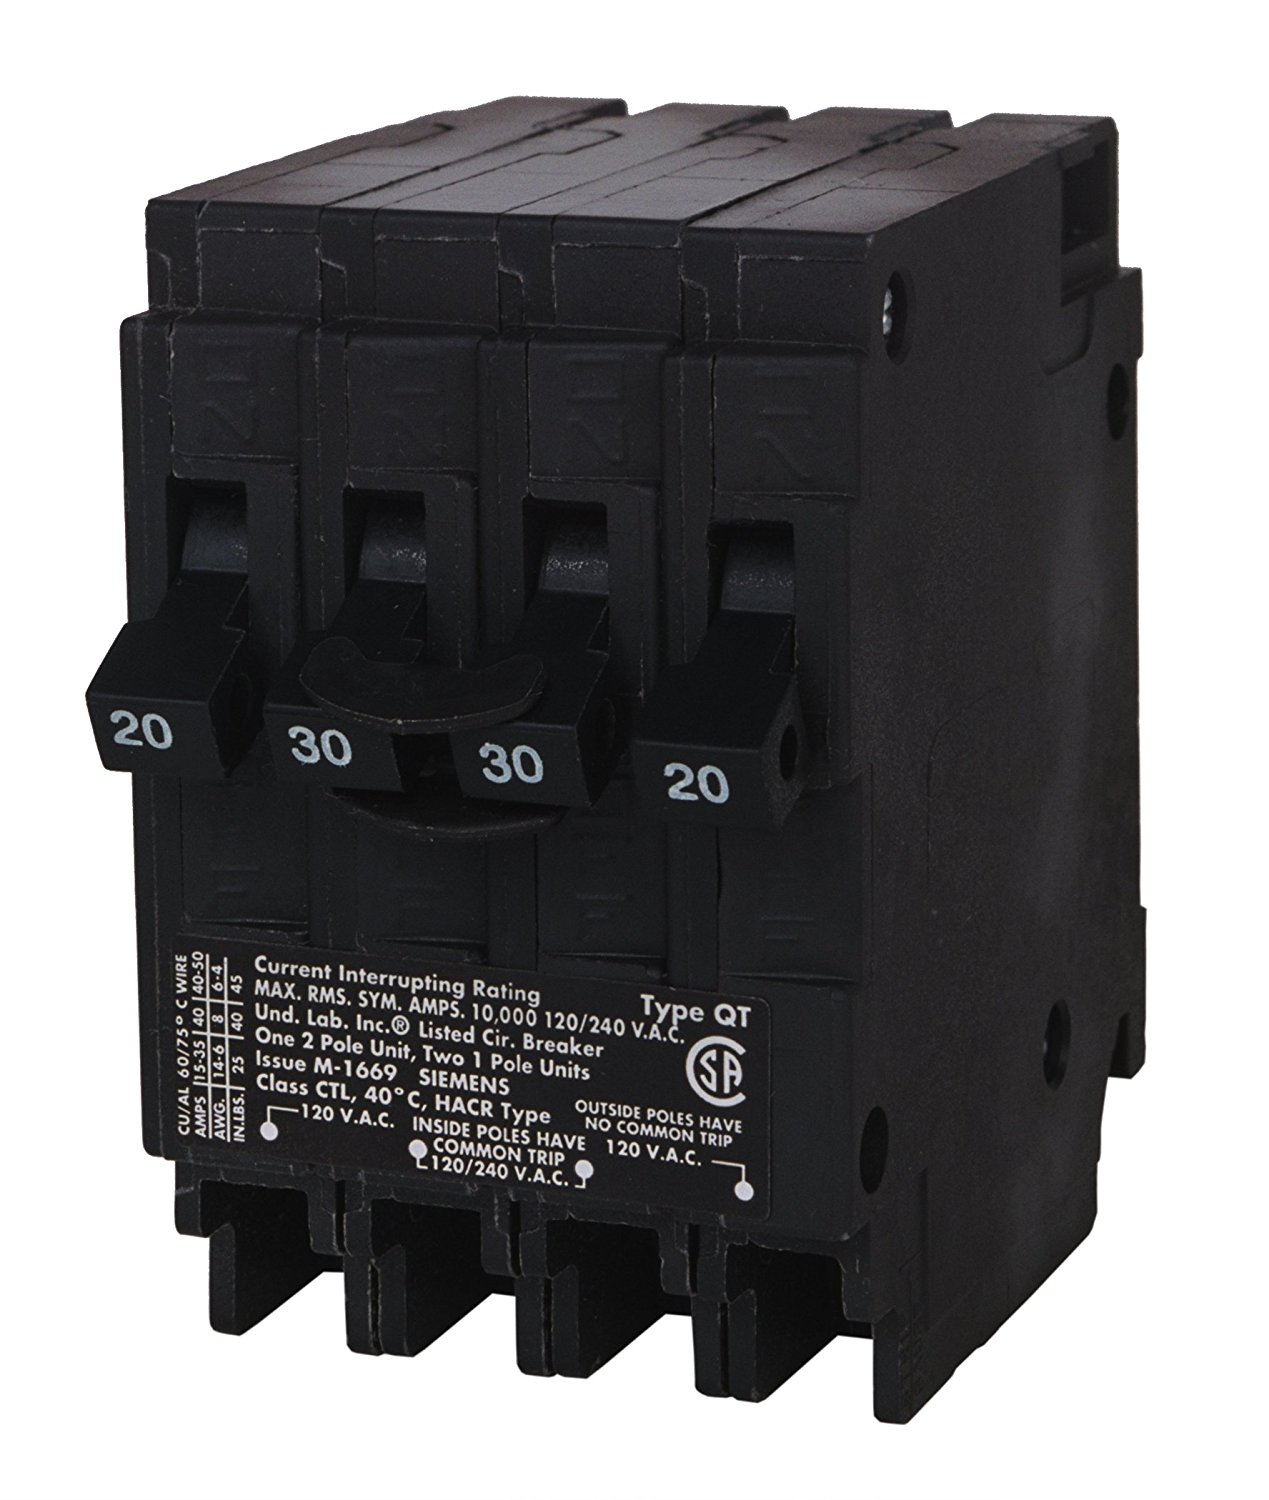 hight resolution of mp23020 one 30 amp double pole two 20 amp single pole circuitmp23020 one 30 amp double pole two 20 amp single pole circuit breaker one 30 amp double pole